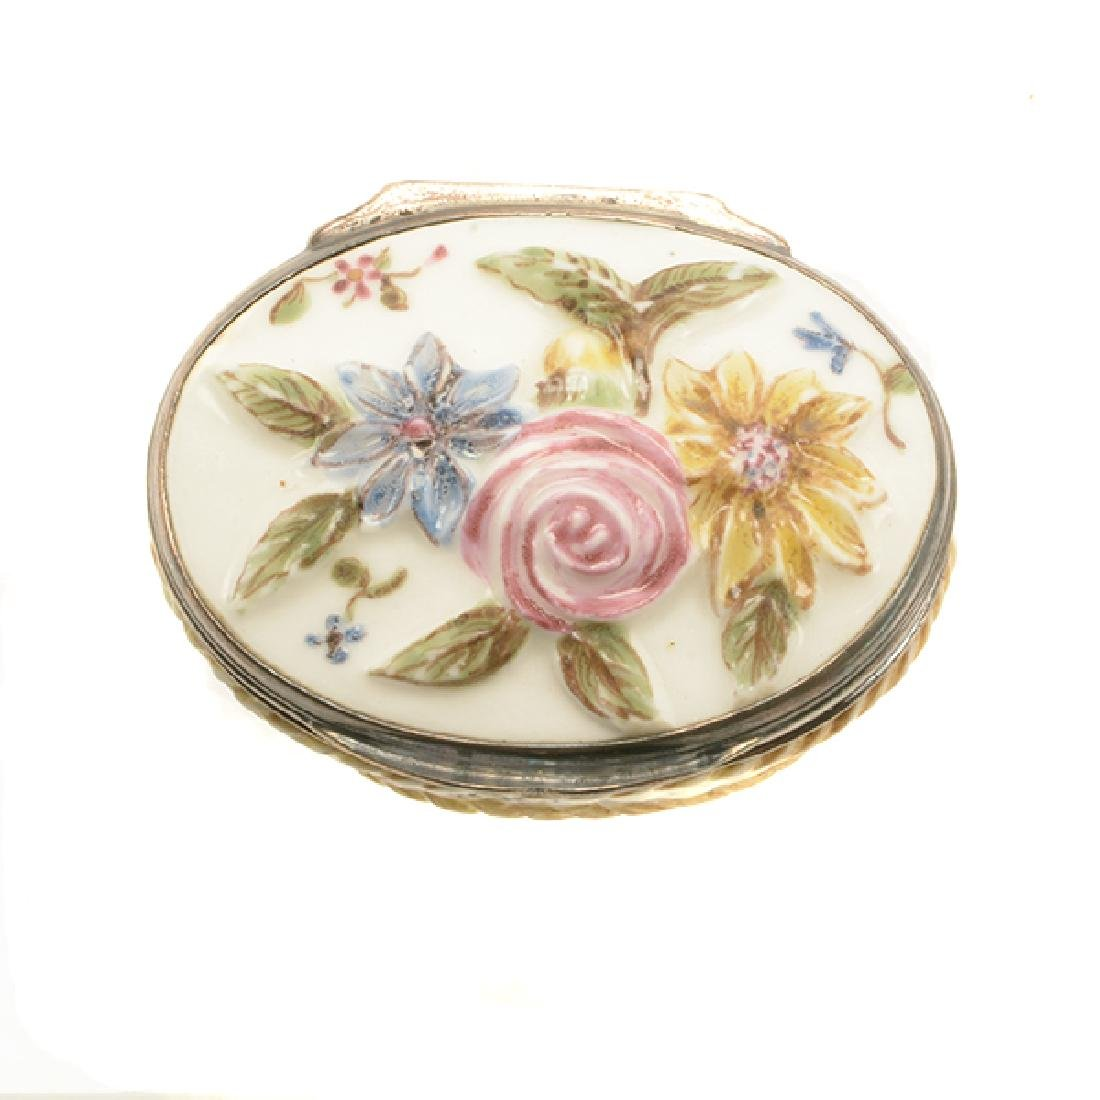 French Mennecy Silver Mounted Porcelain Snuff Box - 6